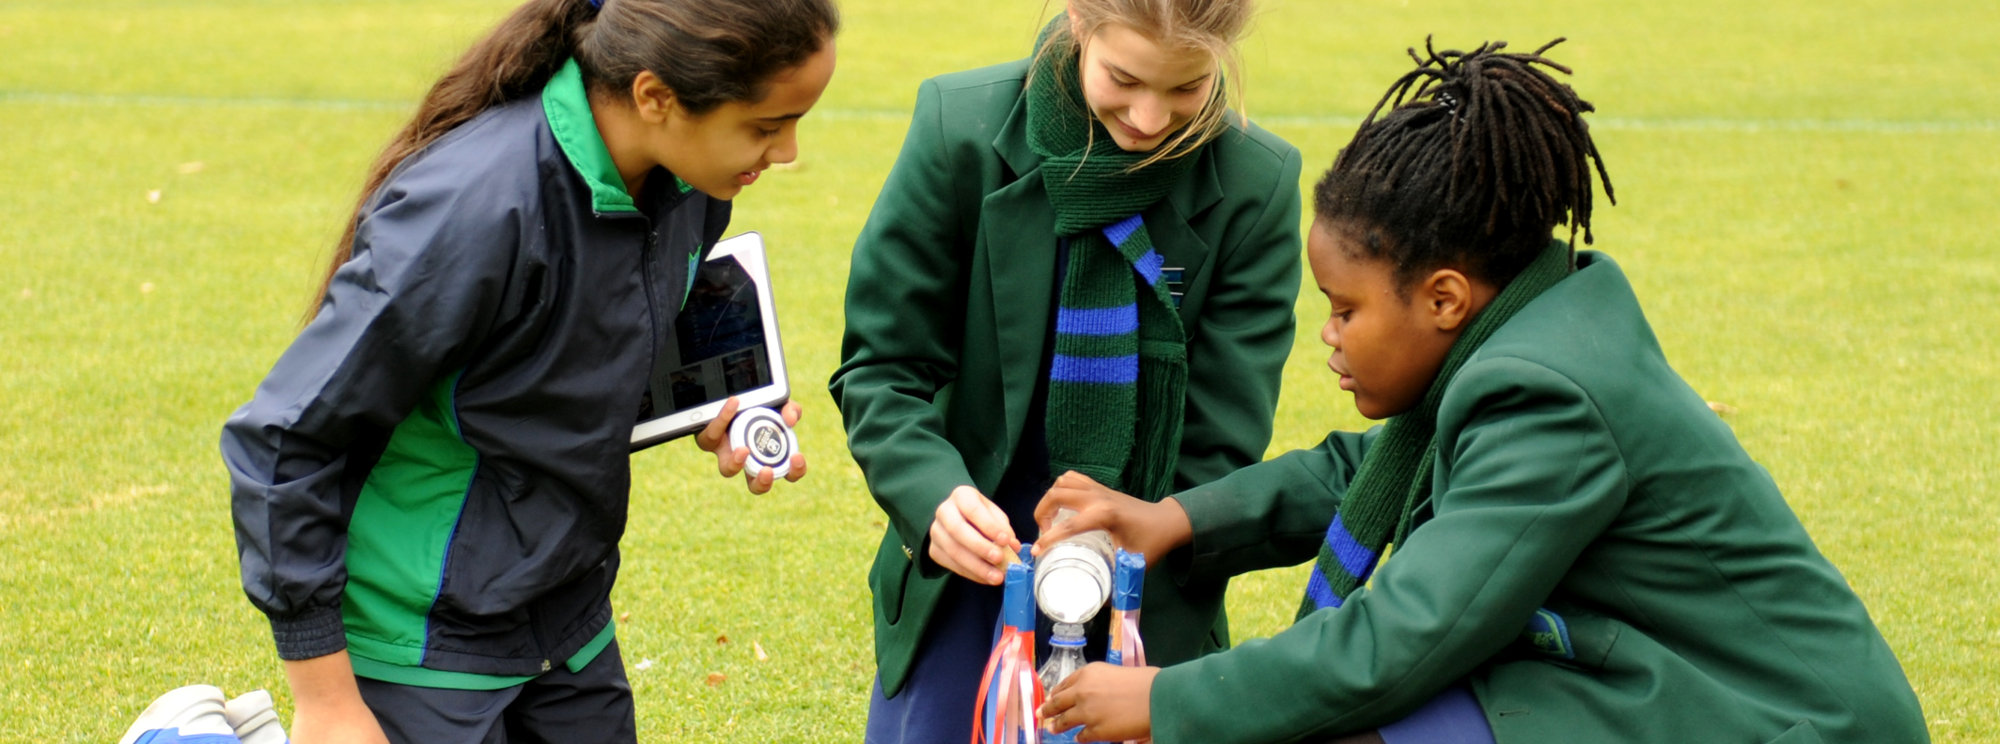 fees Auckland park preparatory school